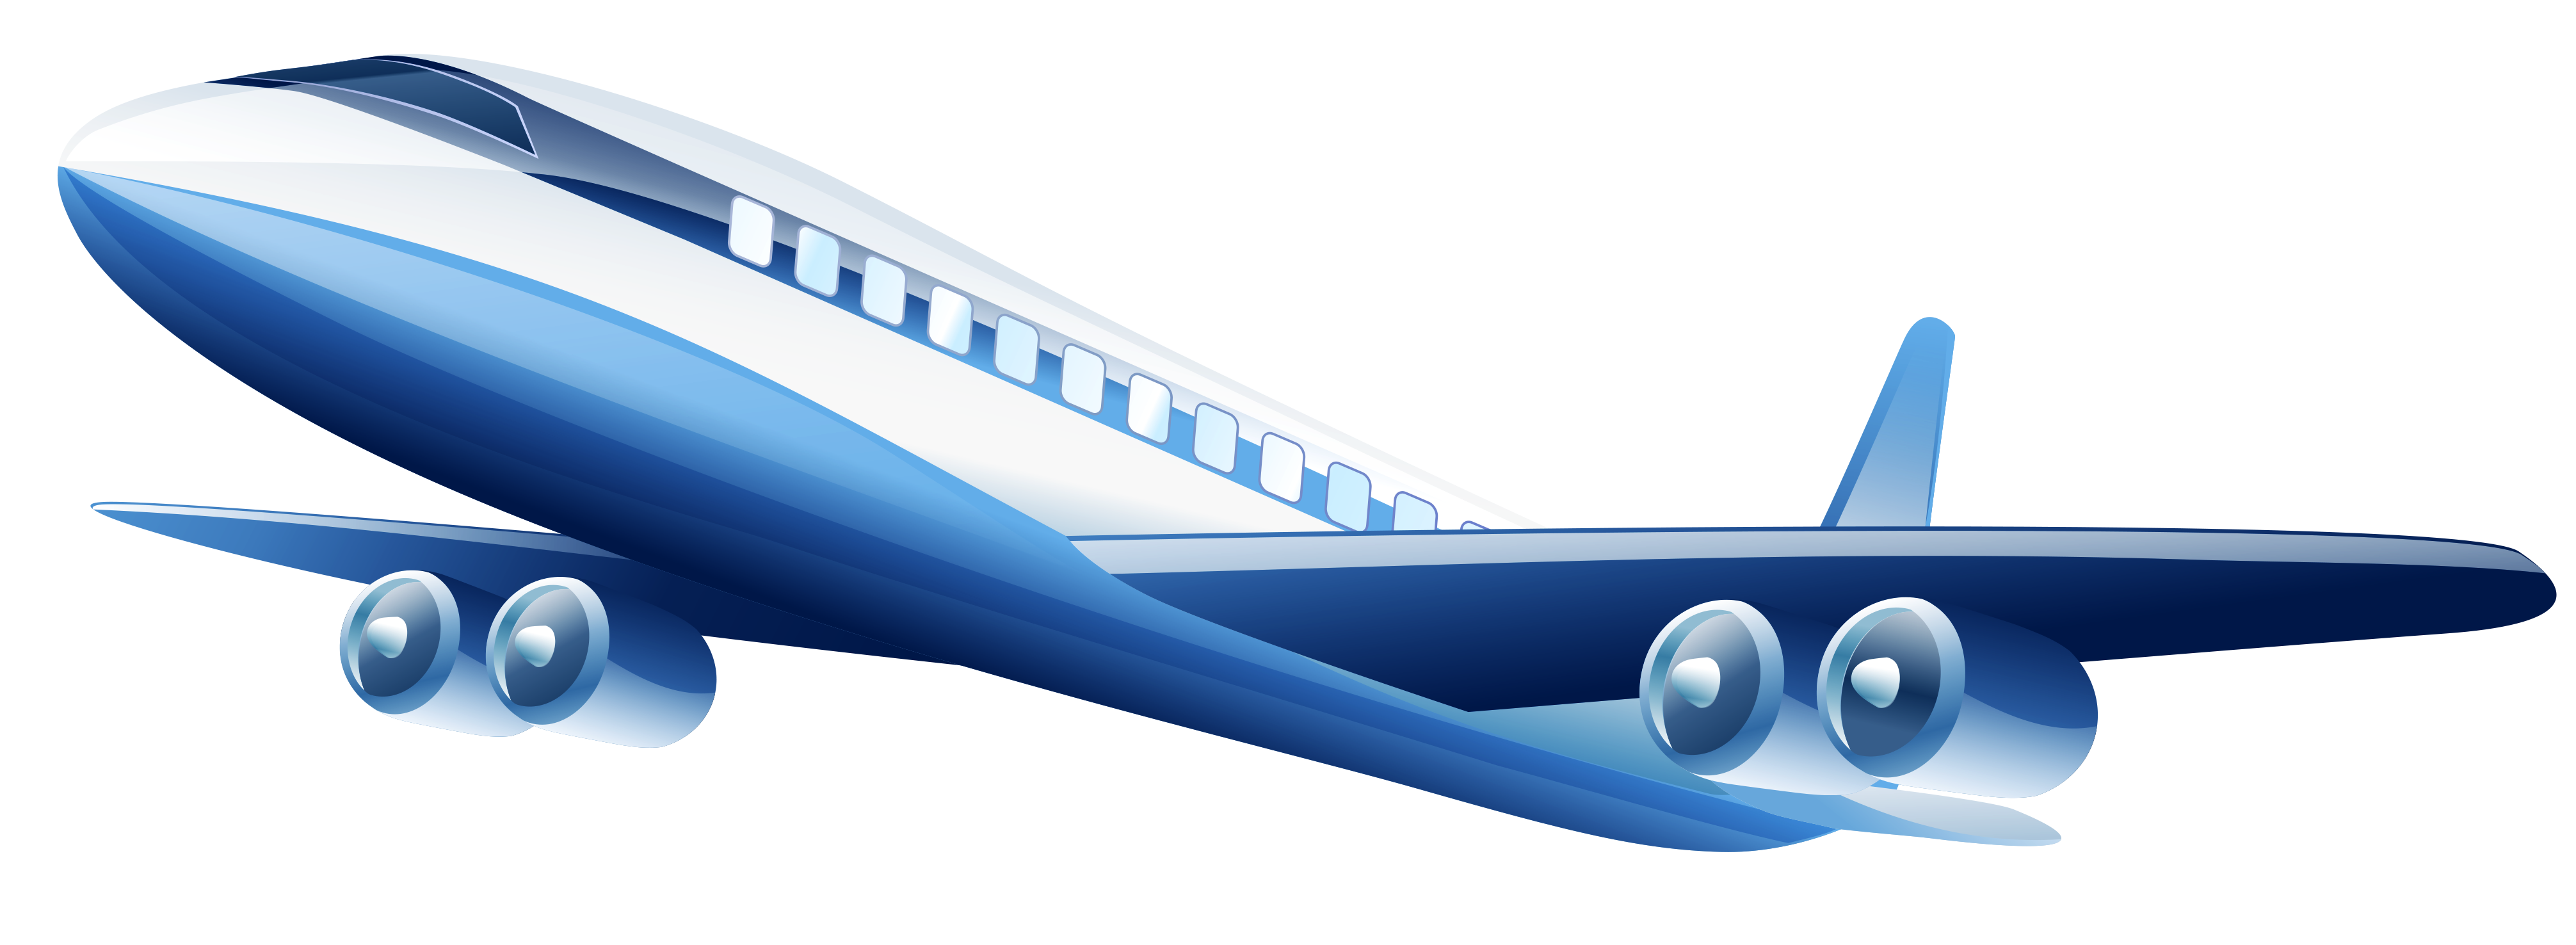 Airplane gallery yopriceville high. Jet clipart bmp